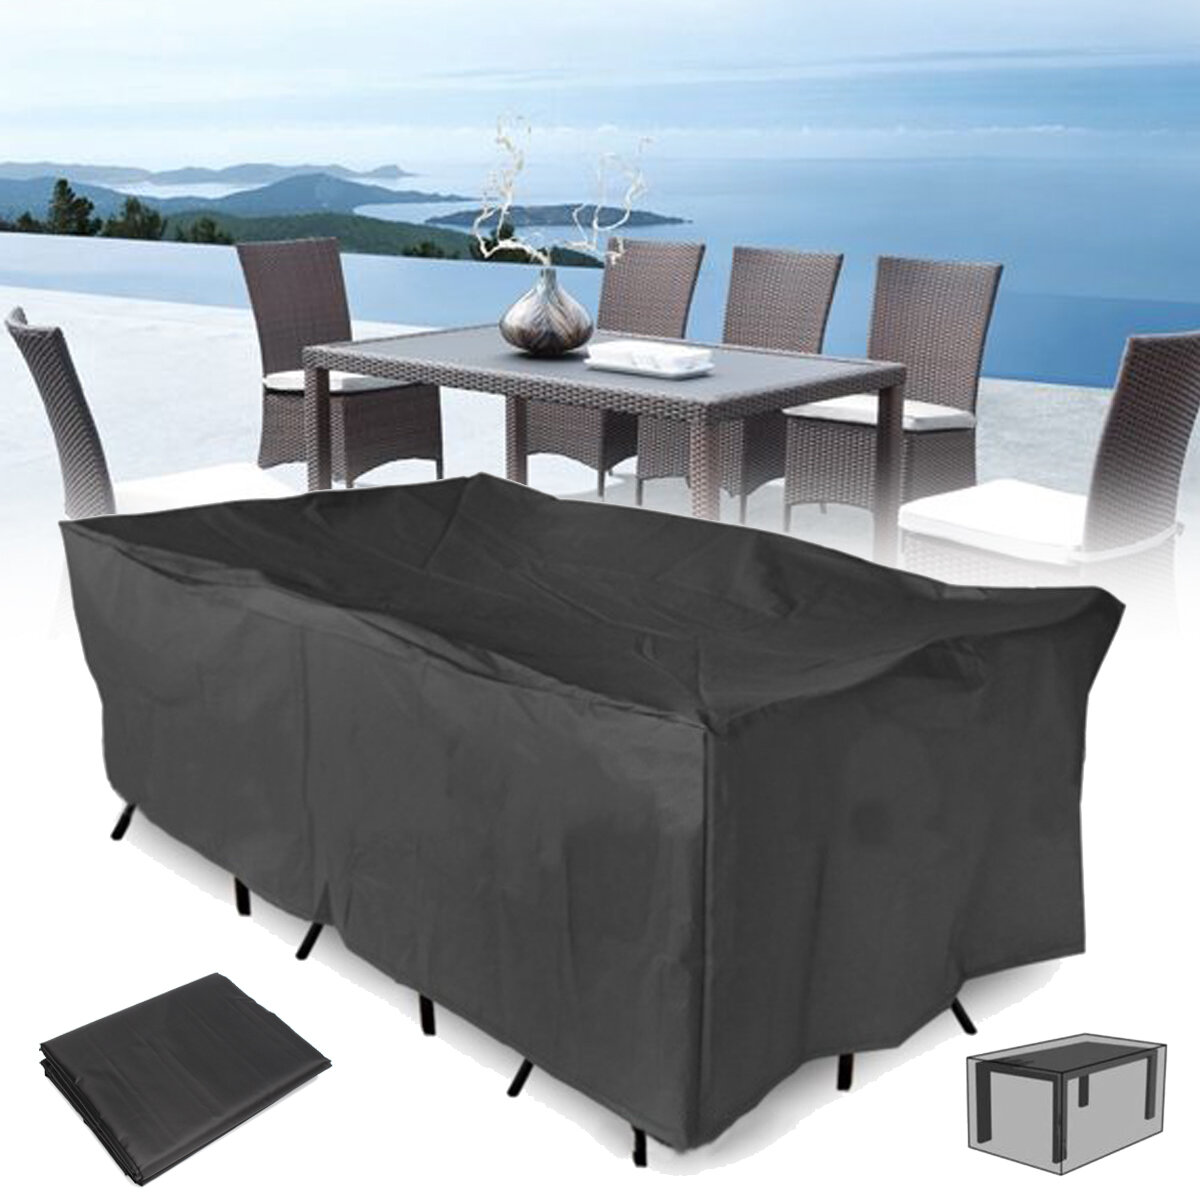 sofa waterproof cover decorating a table 320x220x70cm outdoor garden patio furniture dust customer also viewed